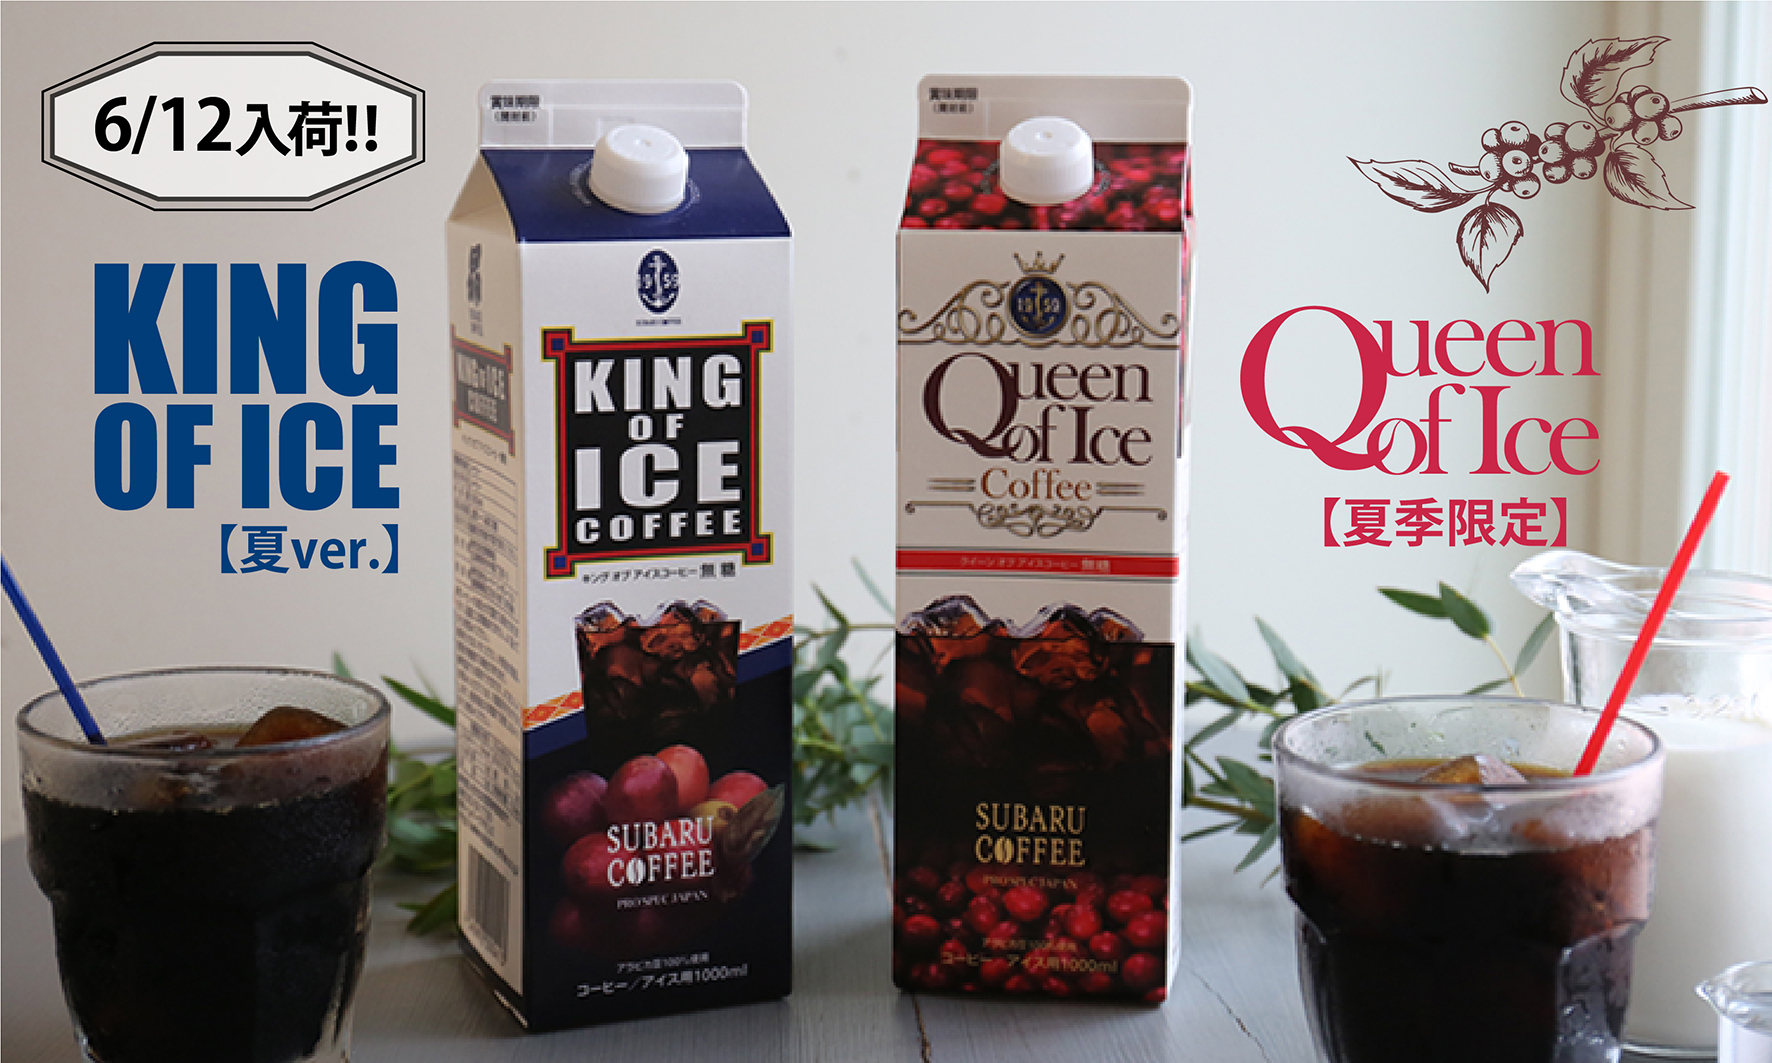 <span>[6/12入荷]自家製アイスコーヒー<br>KING OF ICE&QUEEN OF ICE